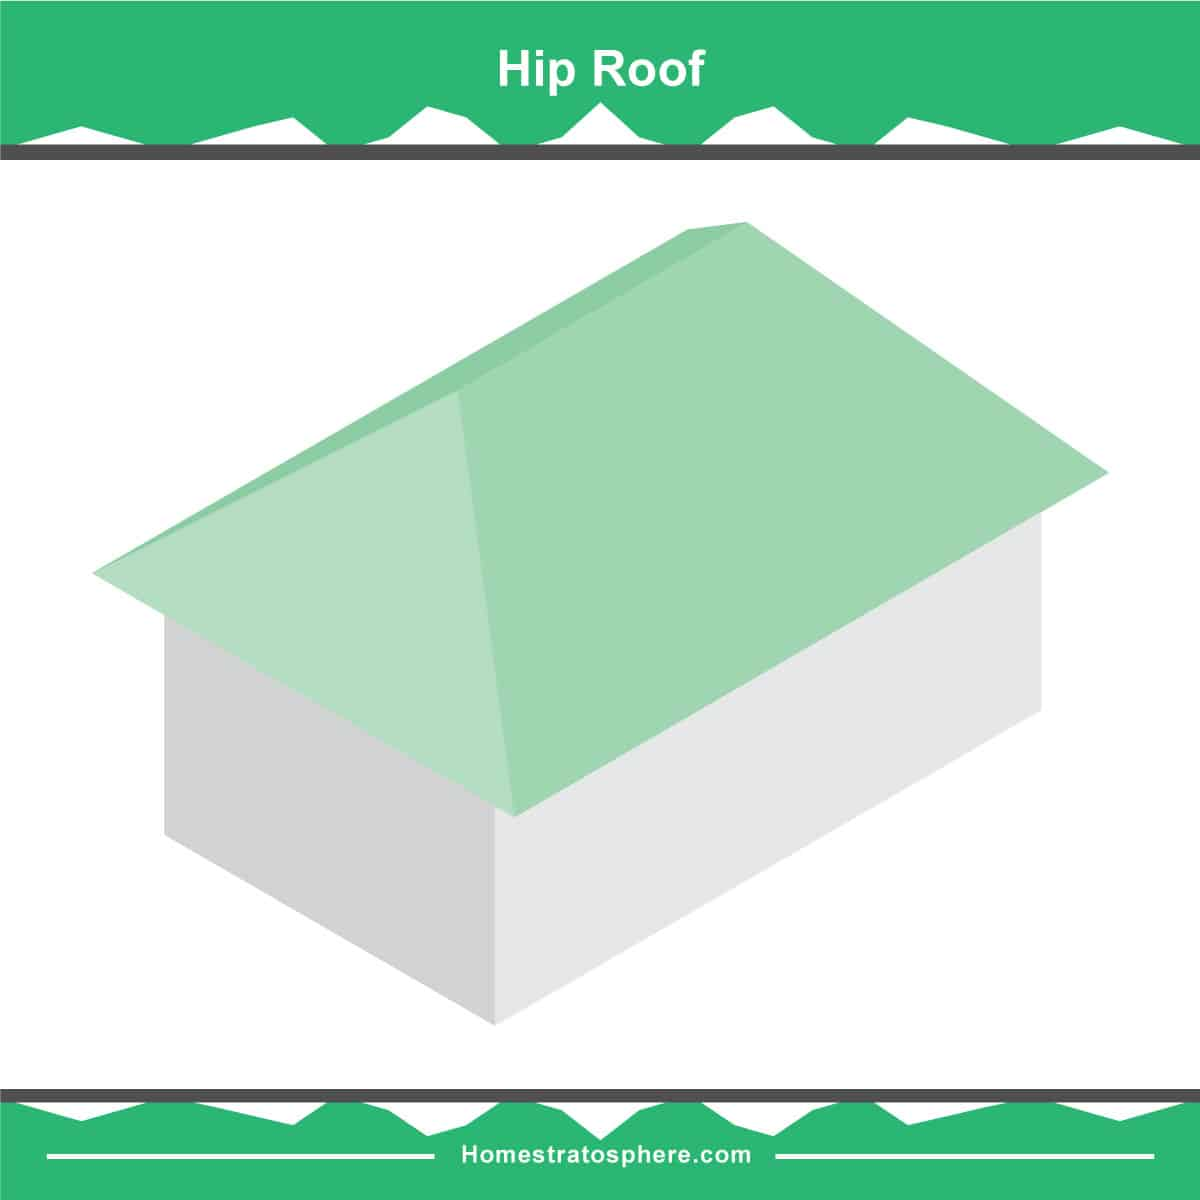 Hipped roof diagram